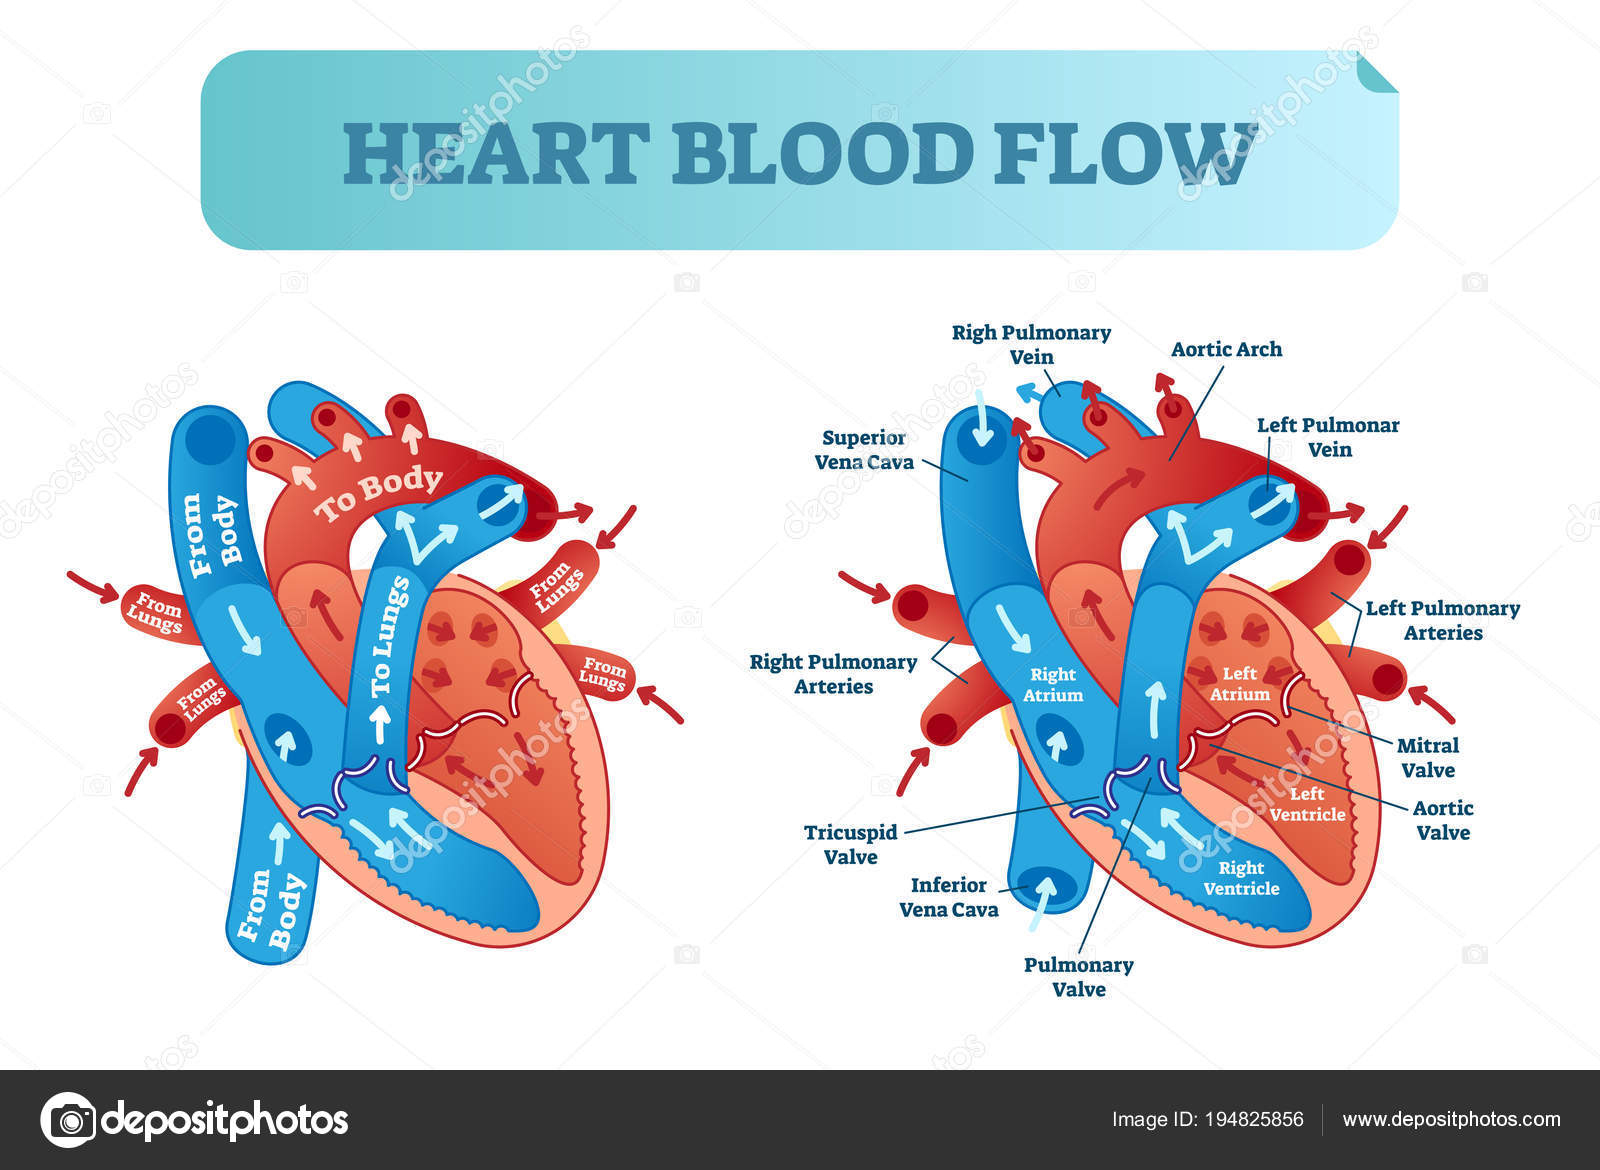 Heart Blood Flow Diagram Heart Blood Flow Circulation Anatomical Diagram With Atrium And